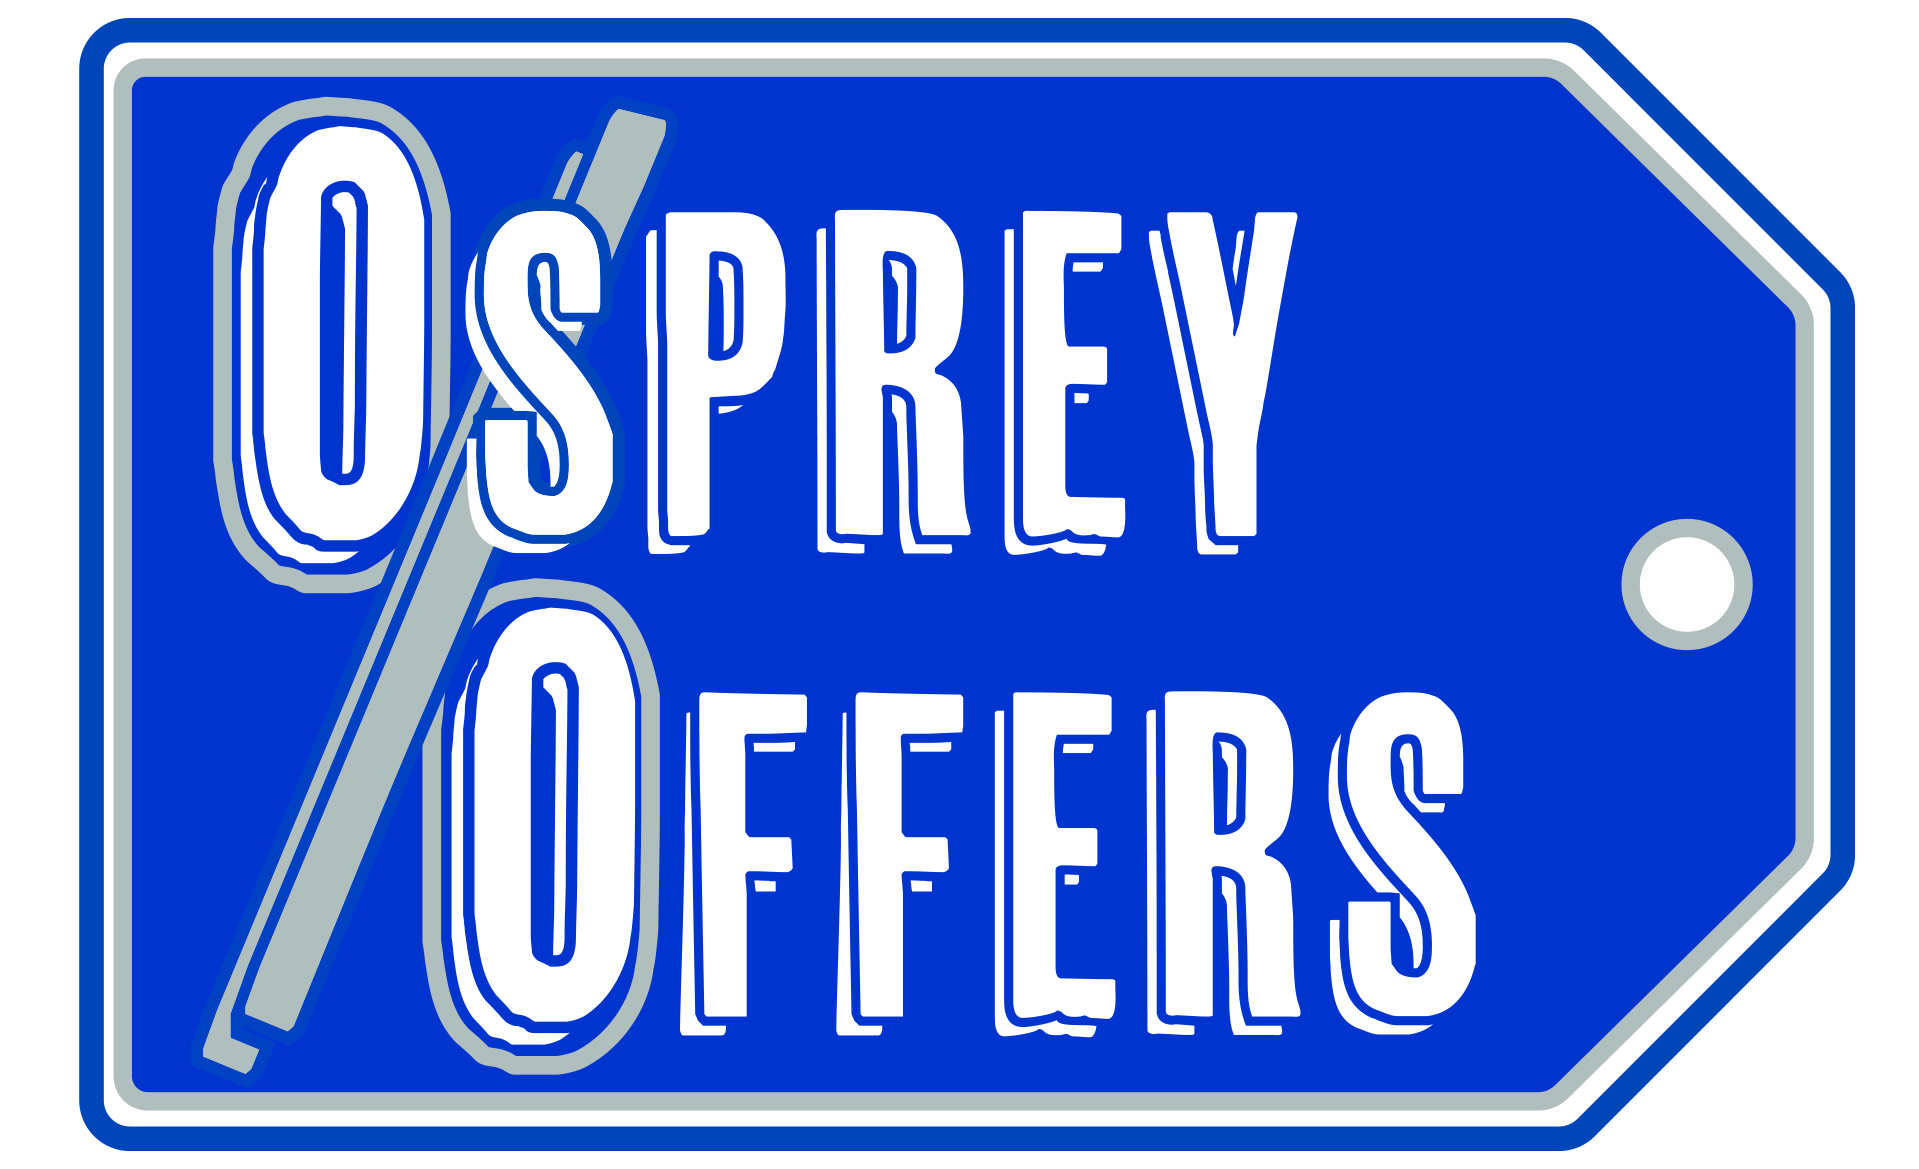 osprey offers logo